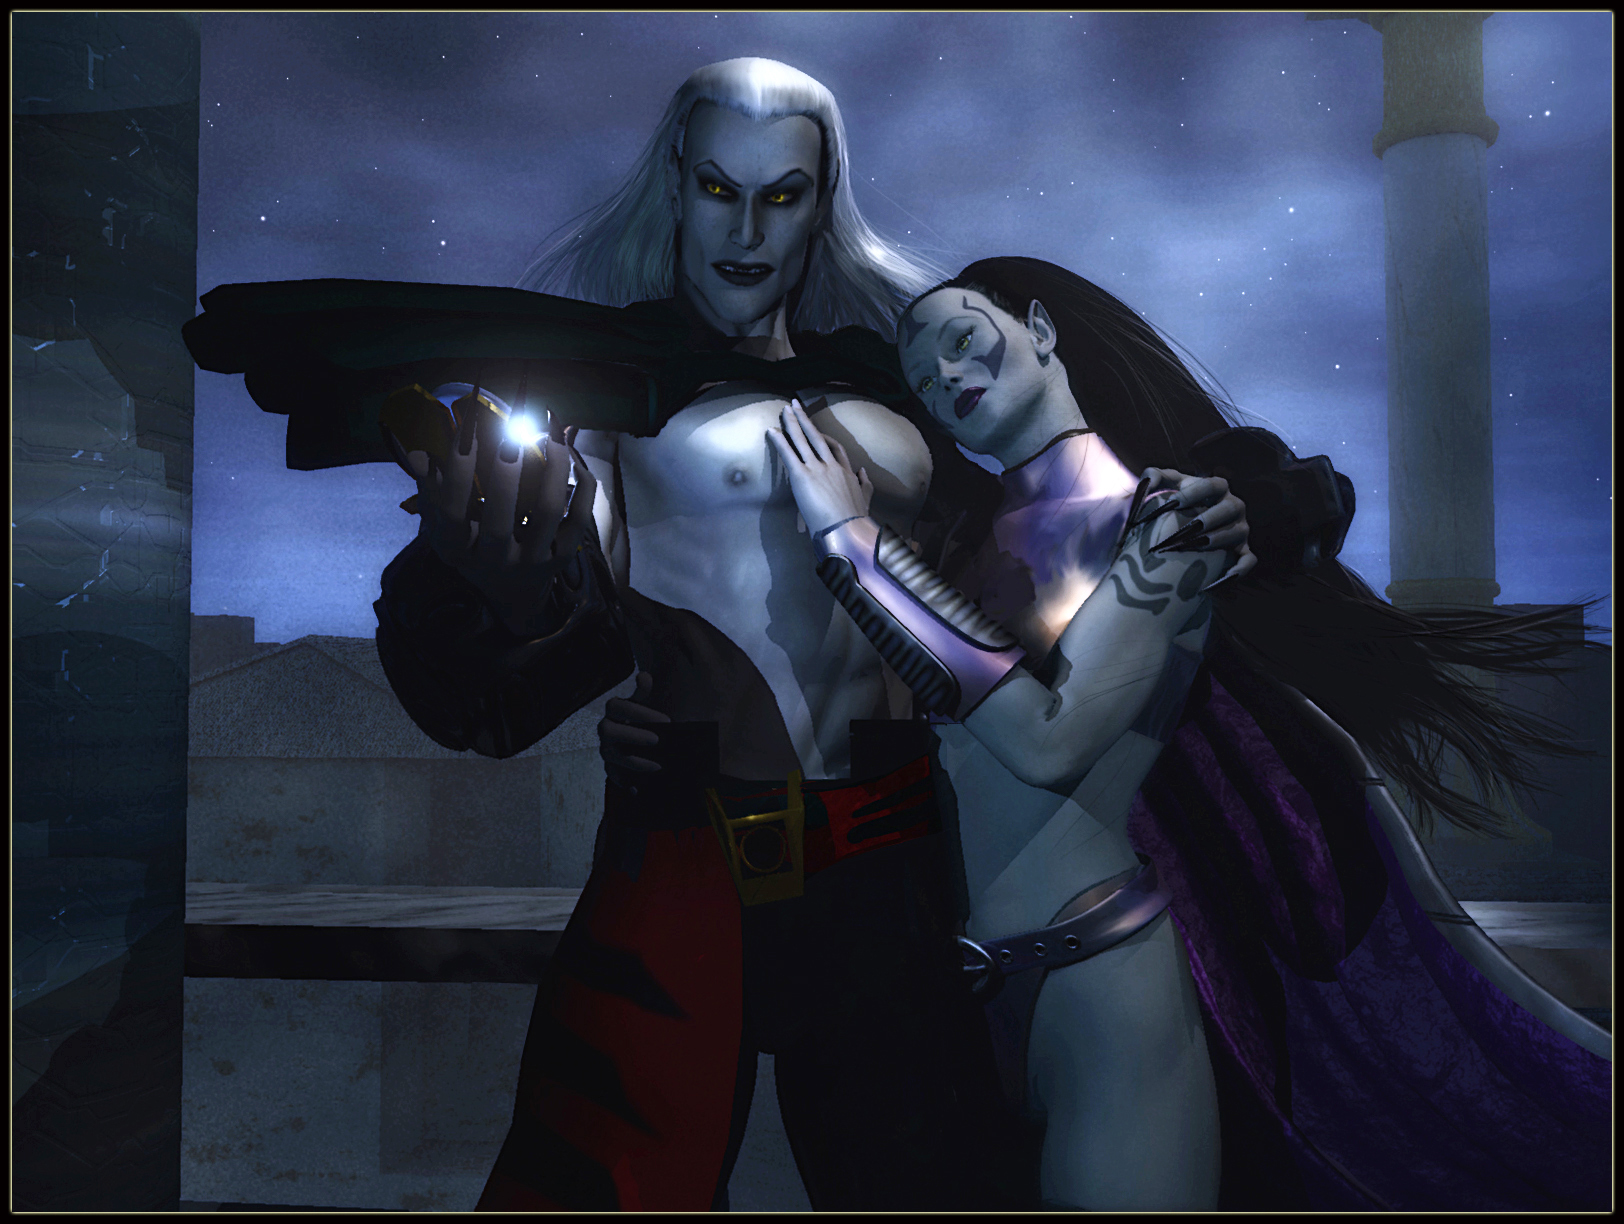 Blood omen porno erotic pictures